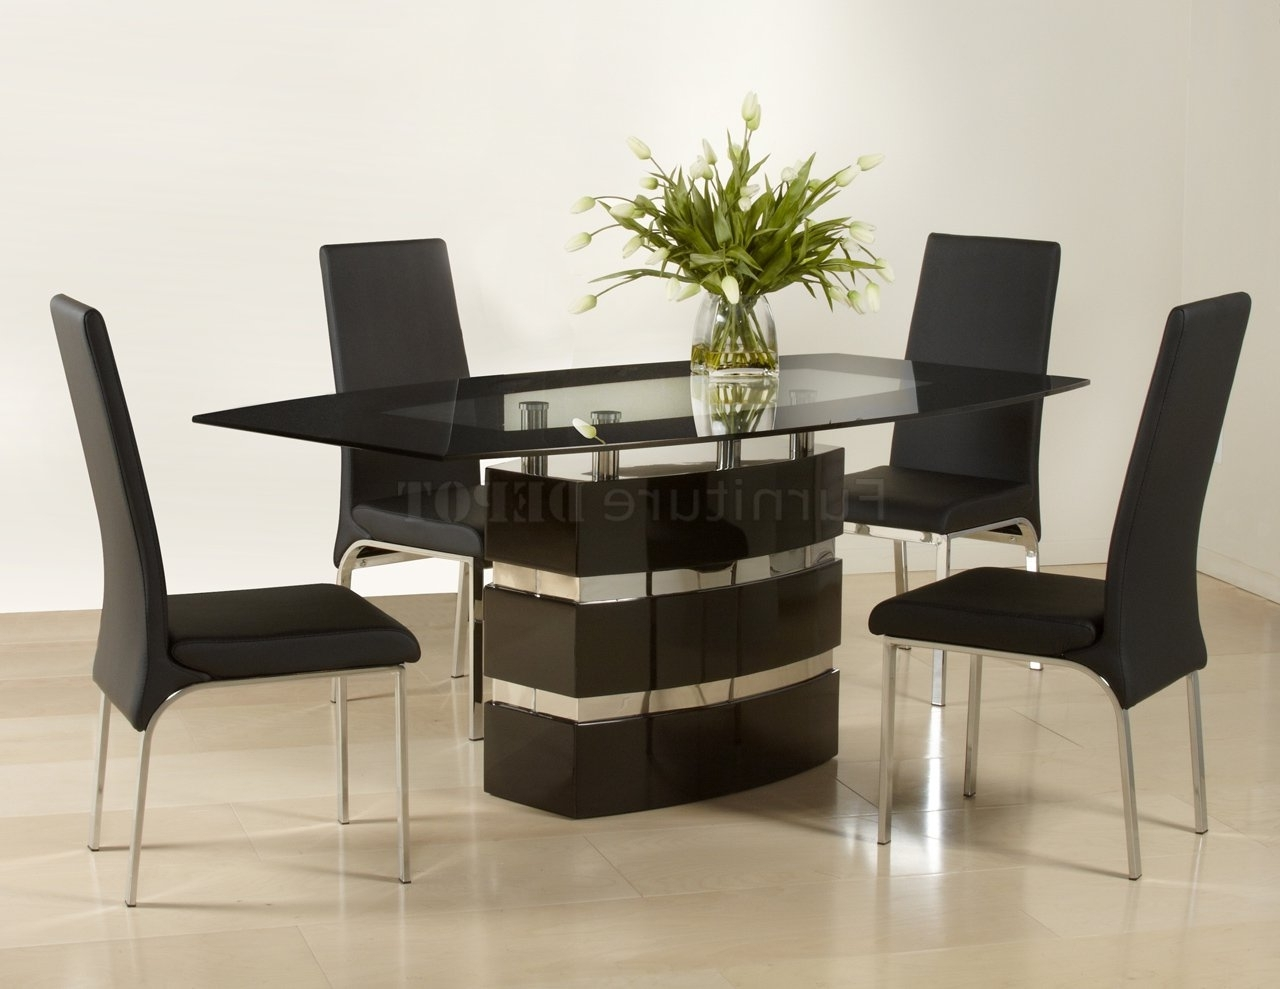 Modern Dining Room Sets In Current Photos: Black High Gloss Finish Modern Dining Table Woptional Chairs (View 14 of 25)